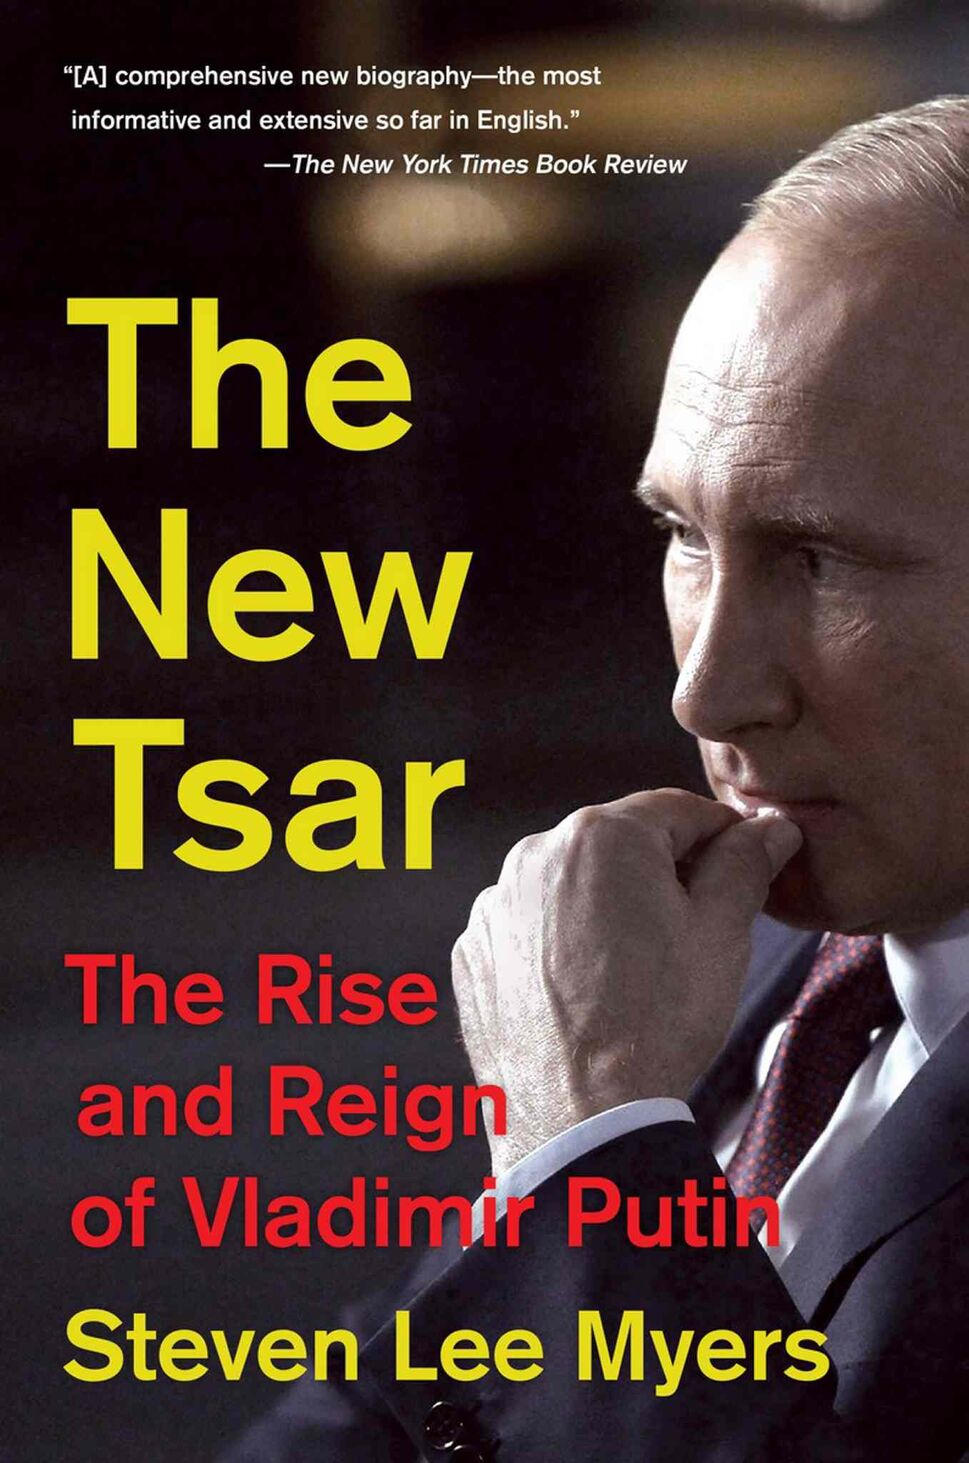 "<h3>The New Tsar: The Rise and Reign of Vladimir Putin </h3> <br/> By Steven Lee Myers <br/> <strong>Here is the book that details everything Donald Trump should know about Vladimir Putin but couldn't be bothered to ask. Written by what Trump would deem an ""elite"" journalist with the ""failing"" New York Times, this is the most insightful, comprehensive and compelling biography of Russia's ruthless boss available. It is a must-read for anyone who seriously wants to understand how Putin has utterly corrupted Russia's economy and democracy, yet basks in popular adulation. </strong> <br/> — Gerald Flood"